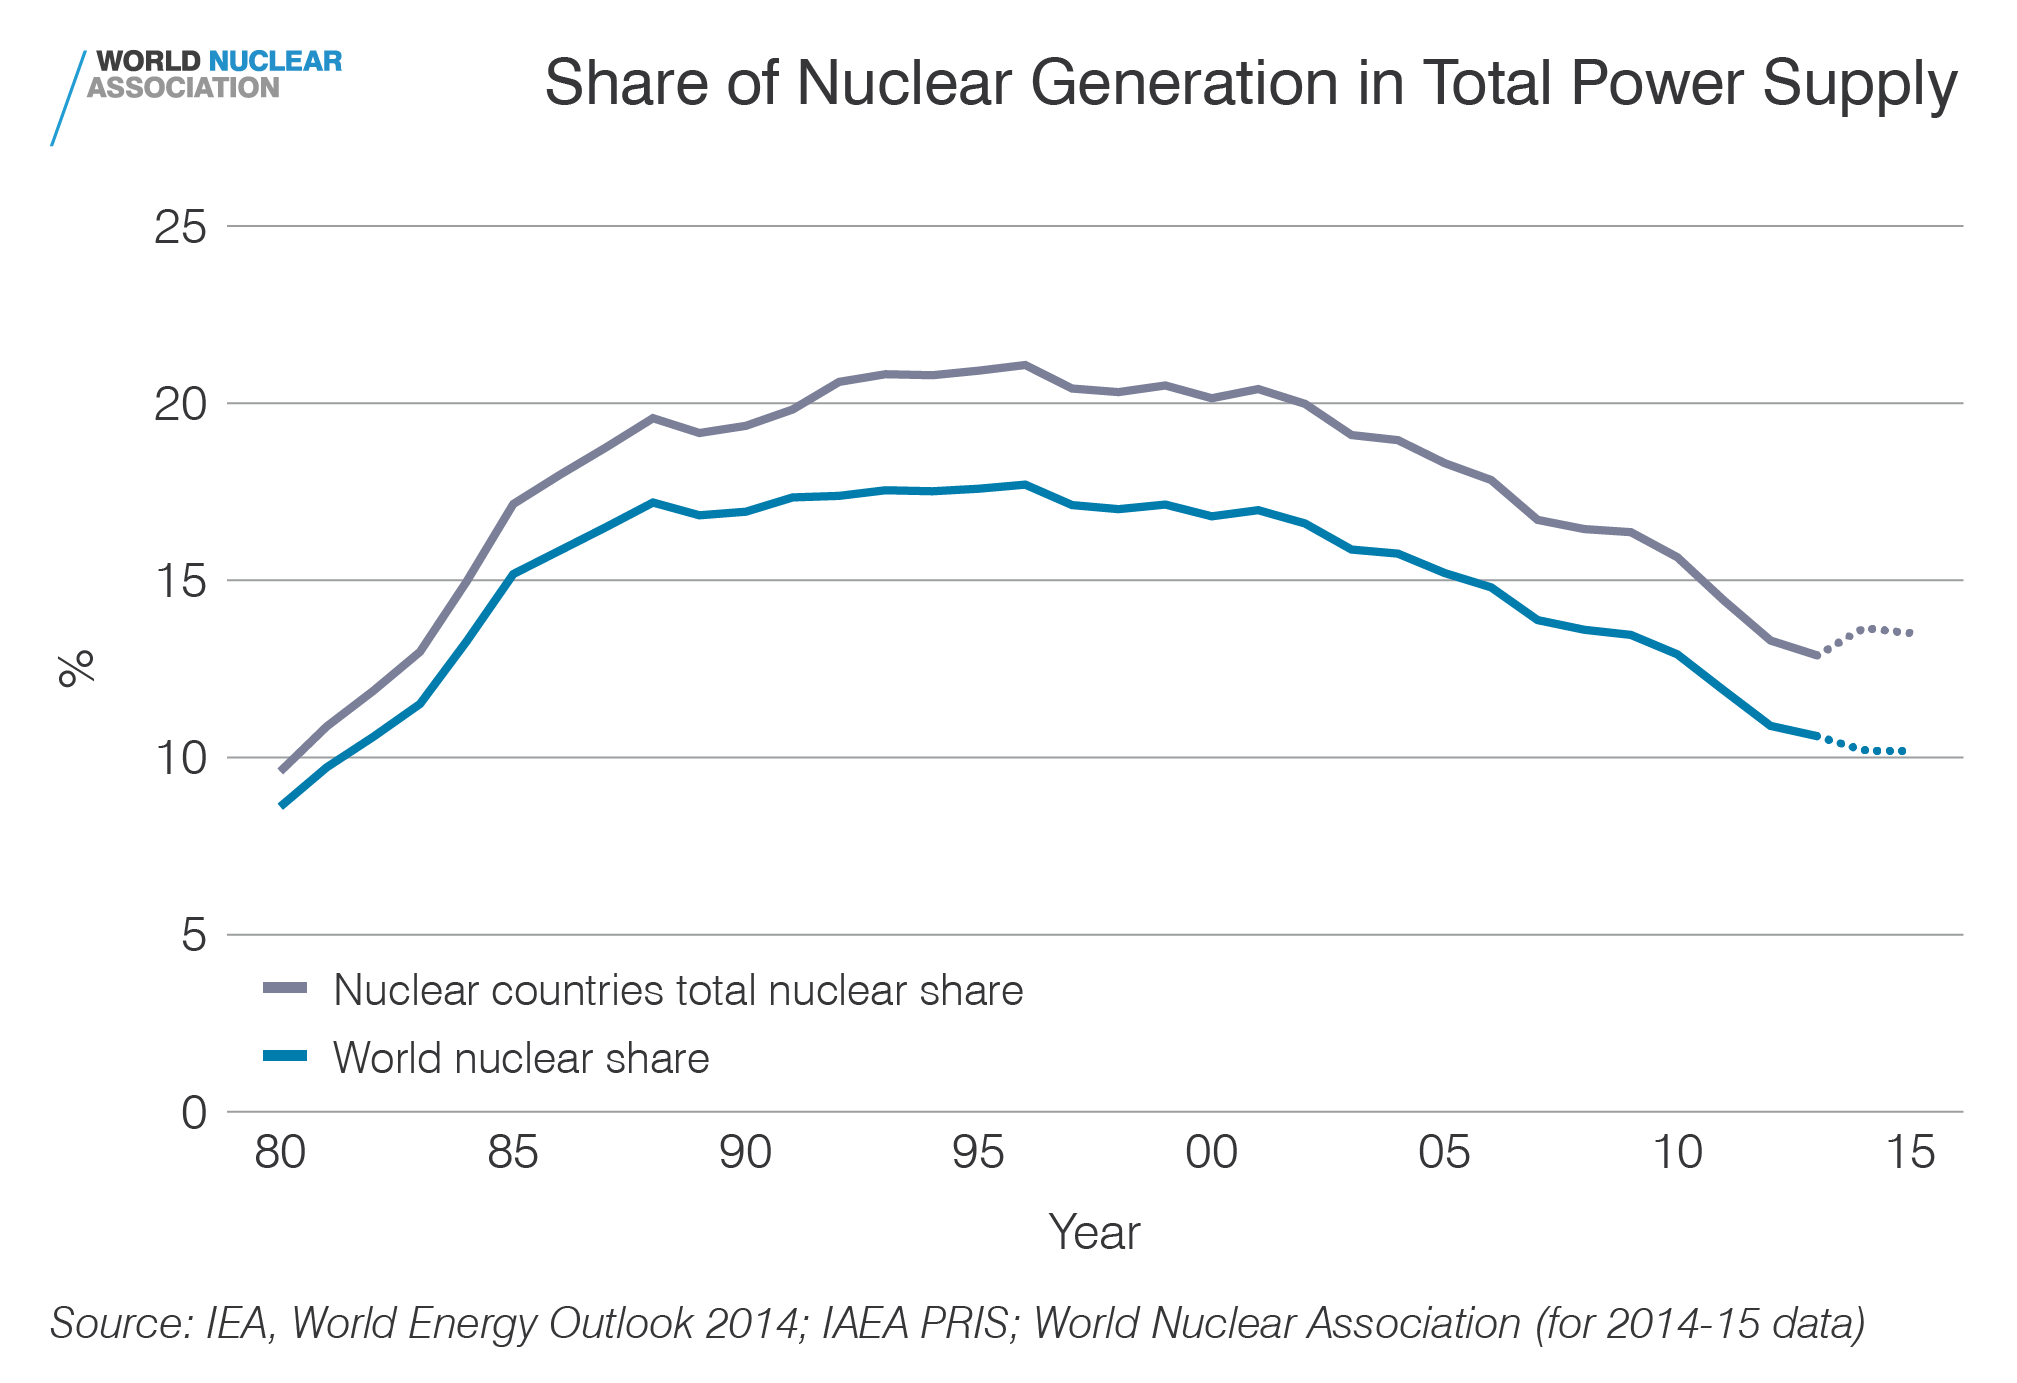 Share of nuclear generation in total power supply